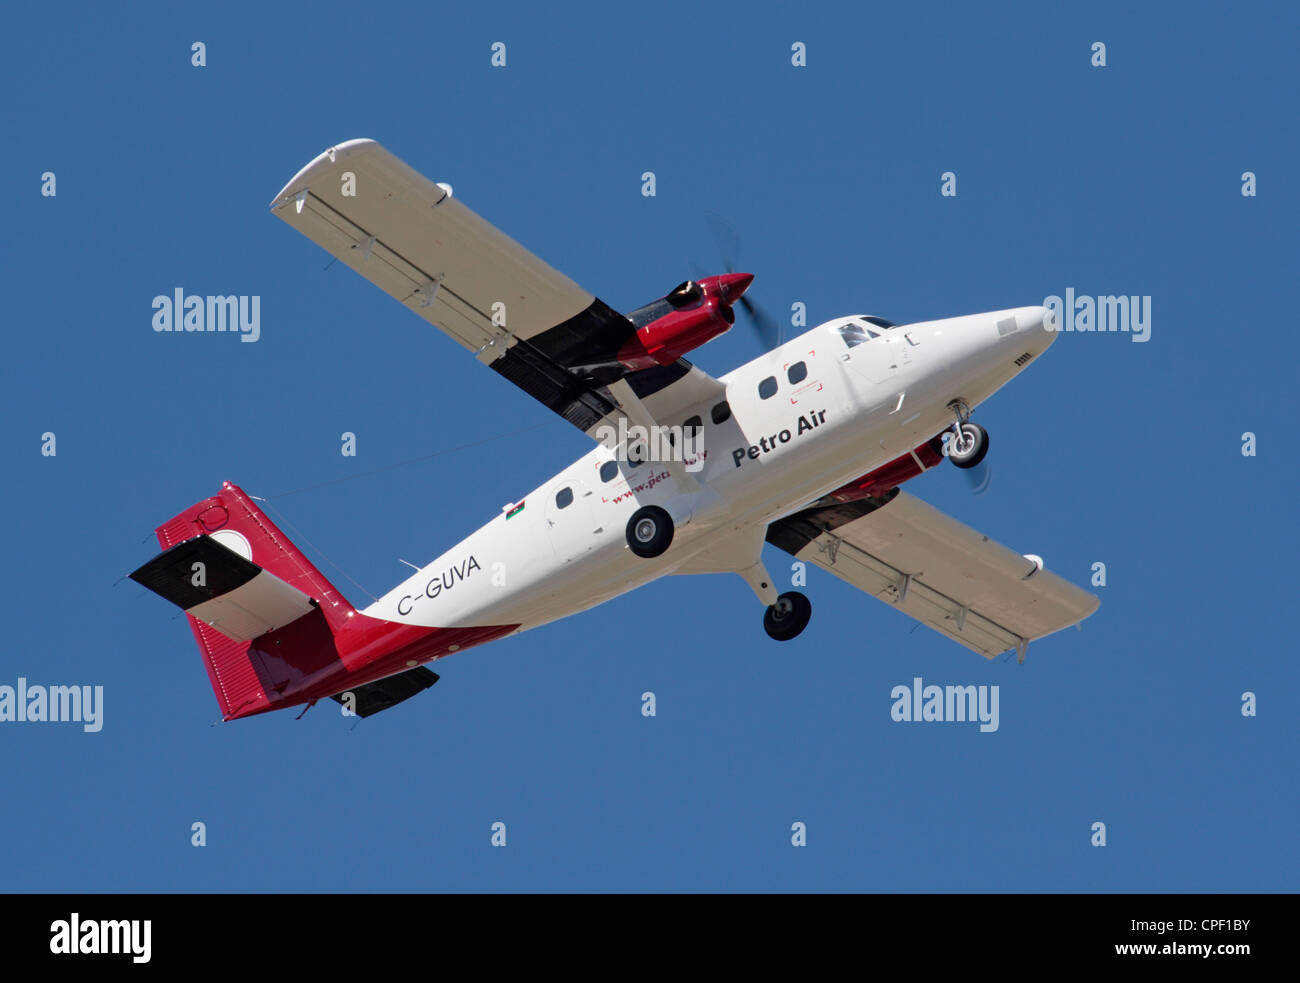 DHC-6 Series 400 Twin Otter utility aircraft on delivery to Petro Air of Libya - Stock Image